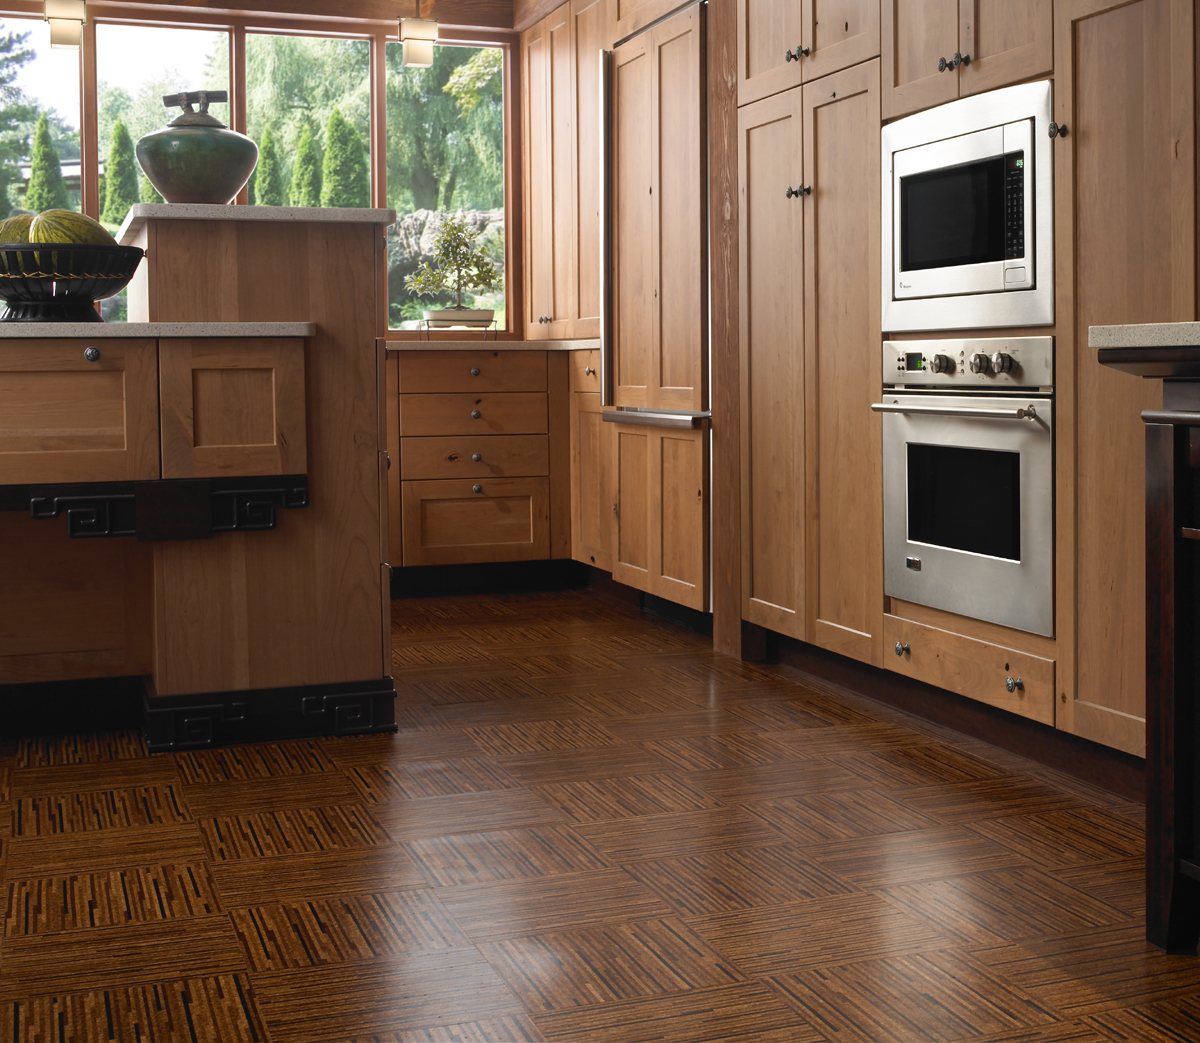 stunning wooden laminate flooring options for kitchens with wooden cabinets system and large windows